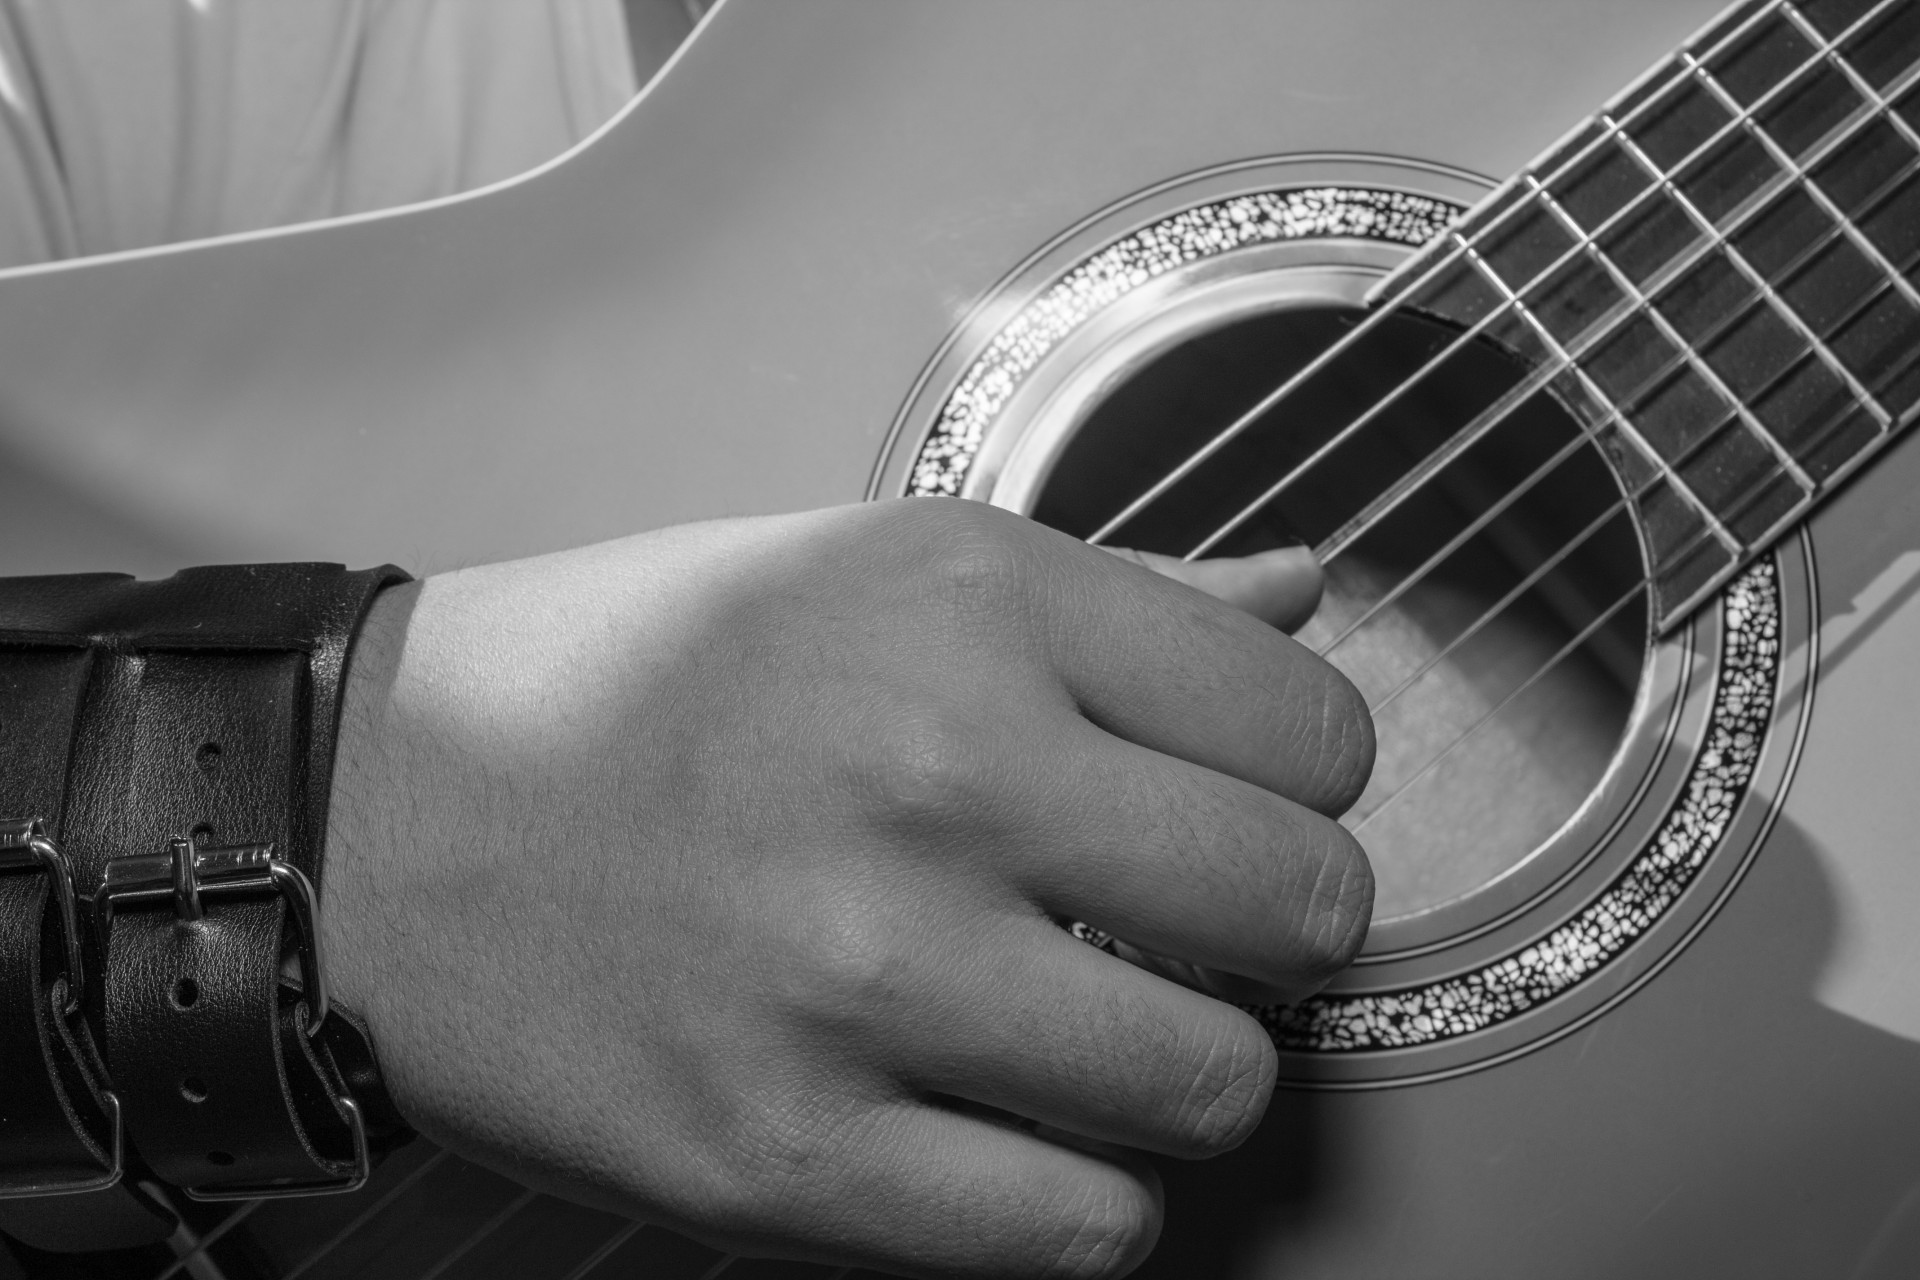 Guitar,acoustic,music,arm,string - free photo from needpix com